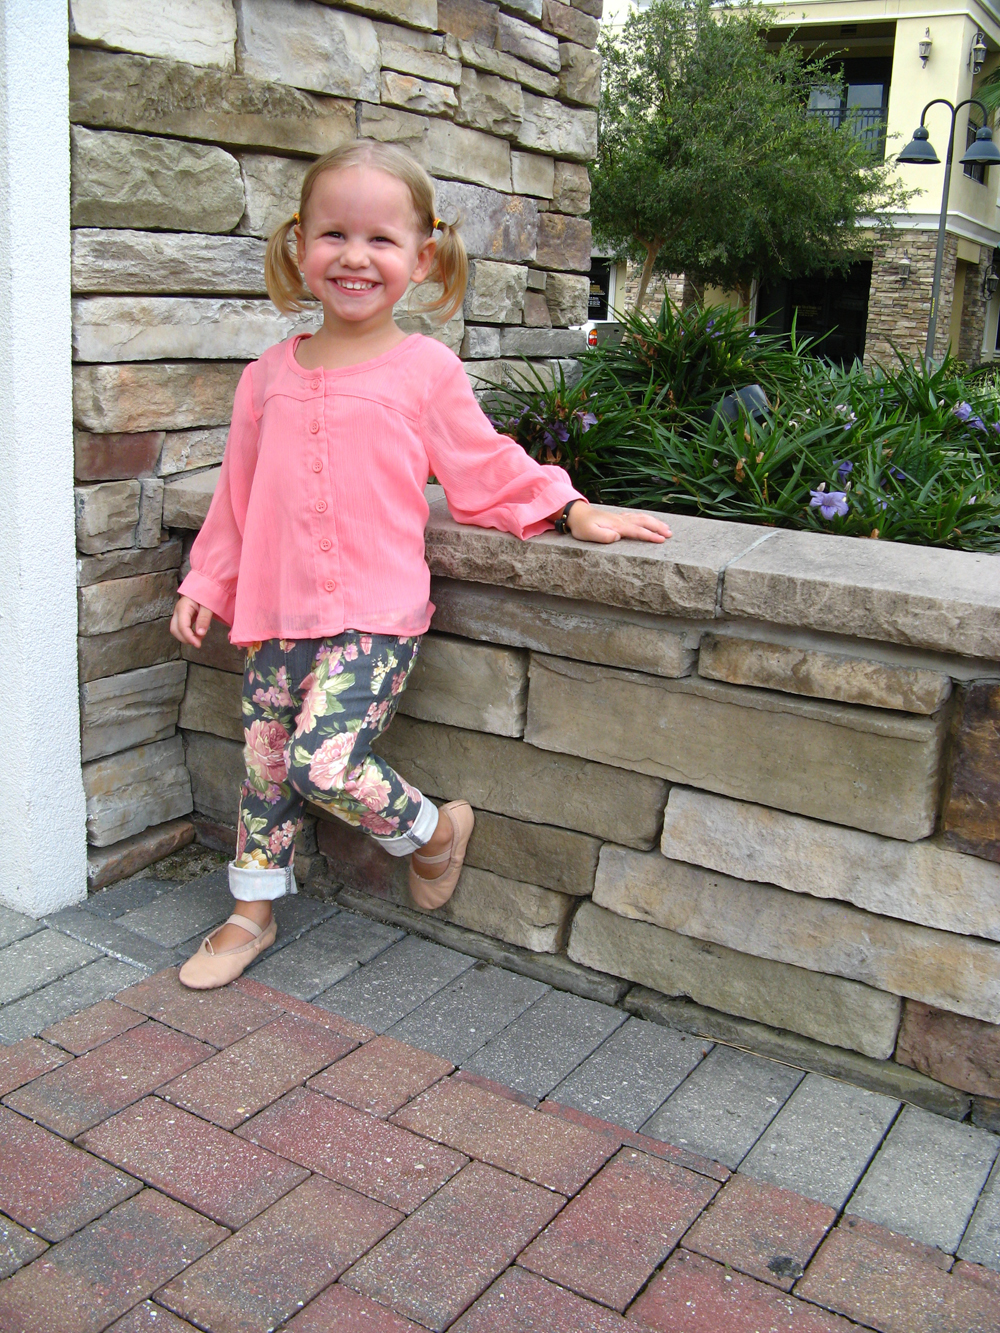 14 - JCPenney Blogger and Kids' Style - Oaxacaborn's FirstDayLook